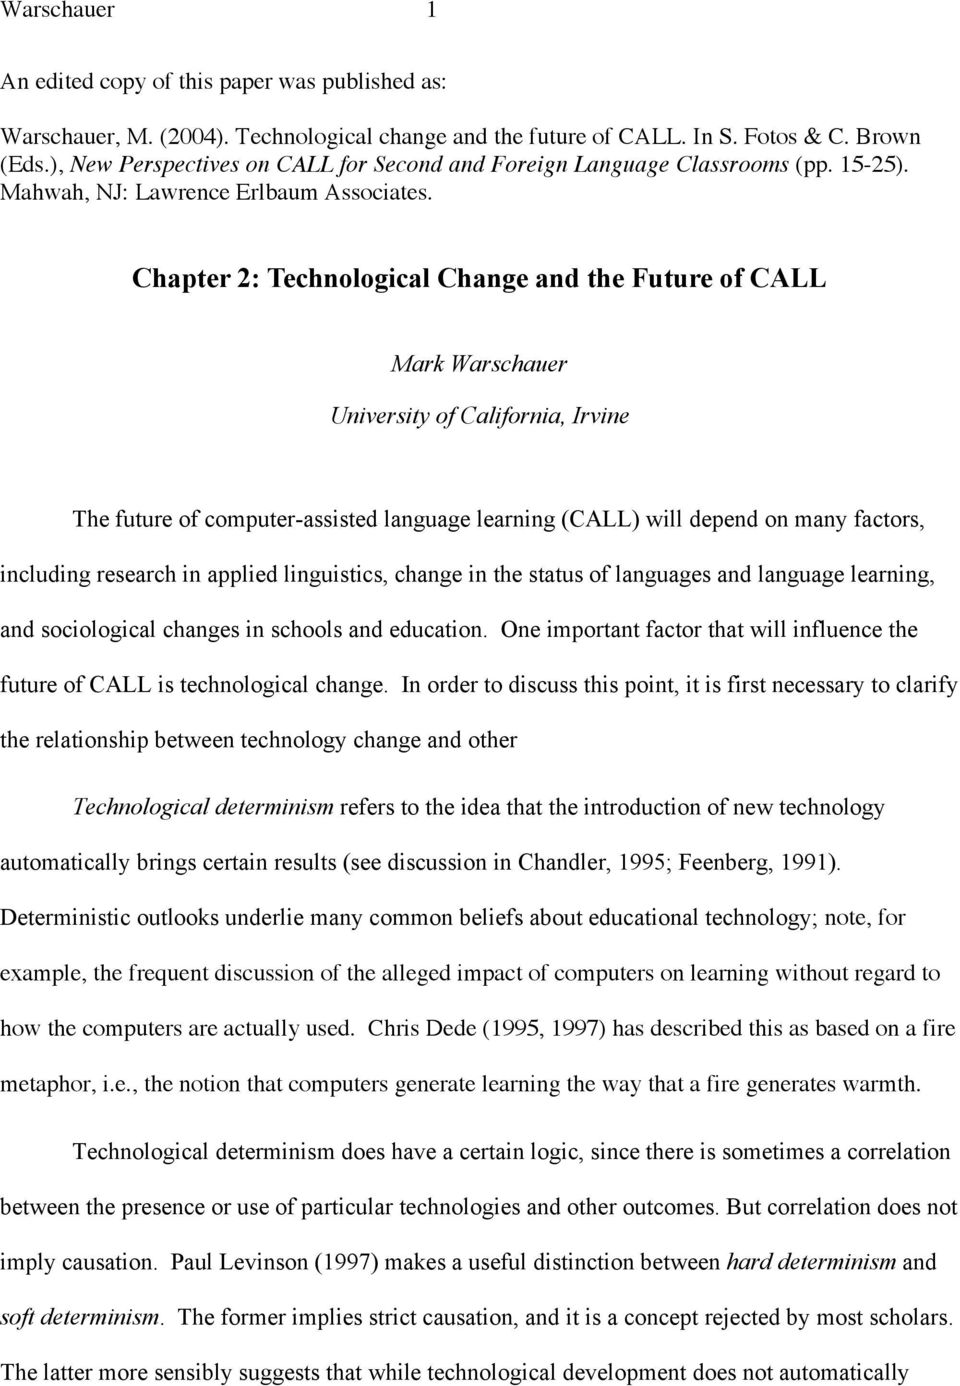 Chapter 2: Technological Change and the Future of CALL Mark Warschauer University of California, Irvine The future of computer-assisted language learning (CALL) will depend on many factors, including